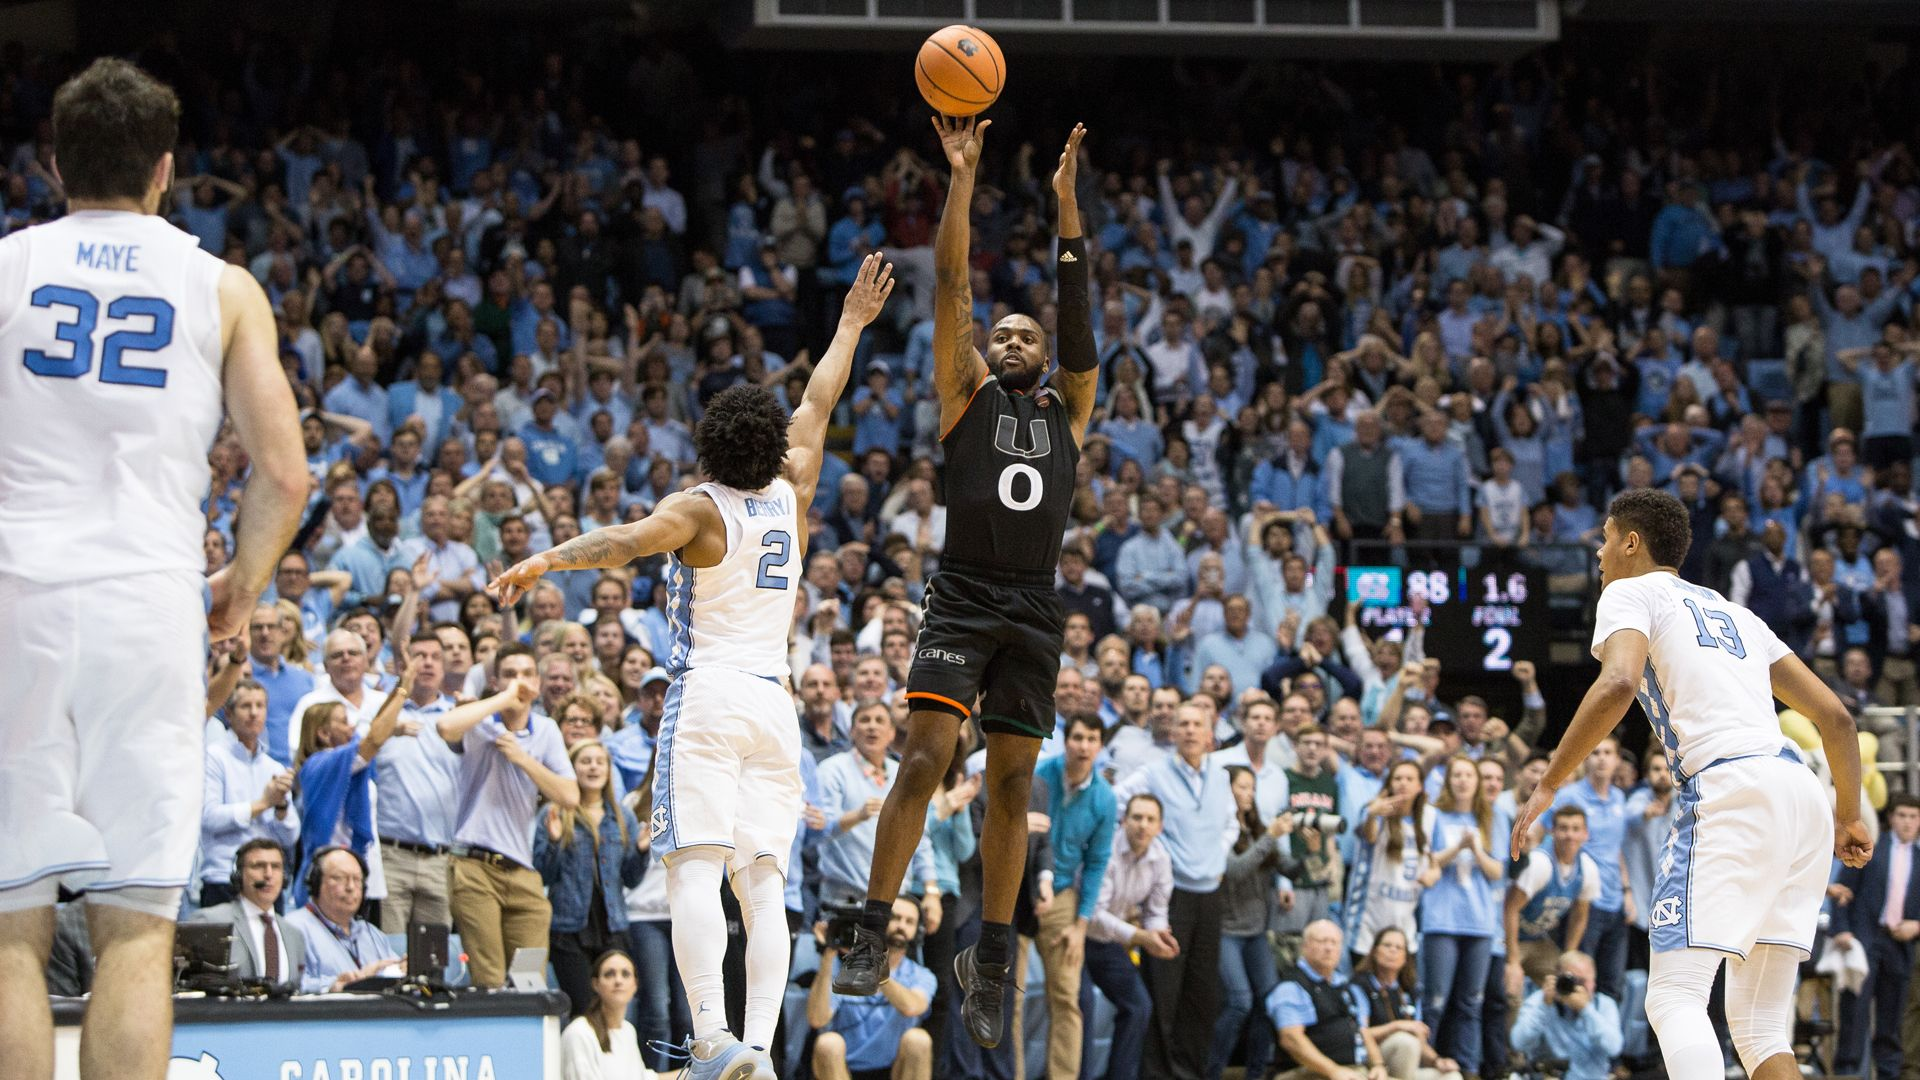 Newton's Buzzer-Beater Propels UM to Win at No. 9 UNC